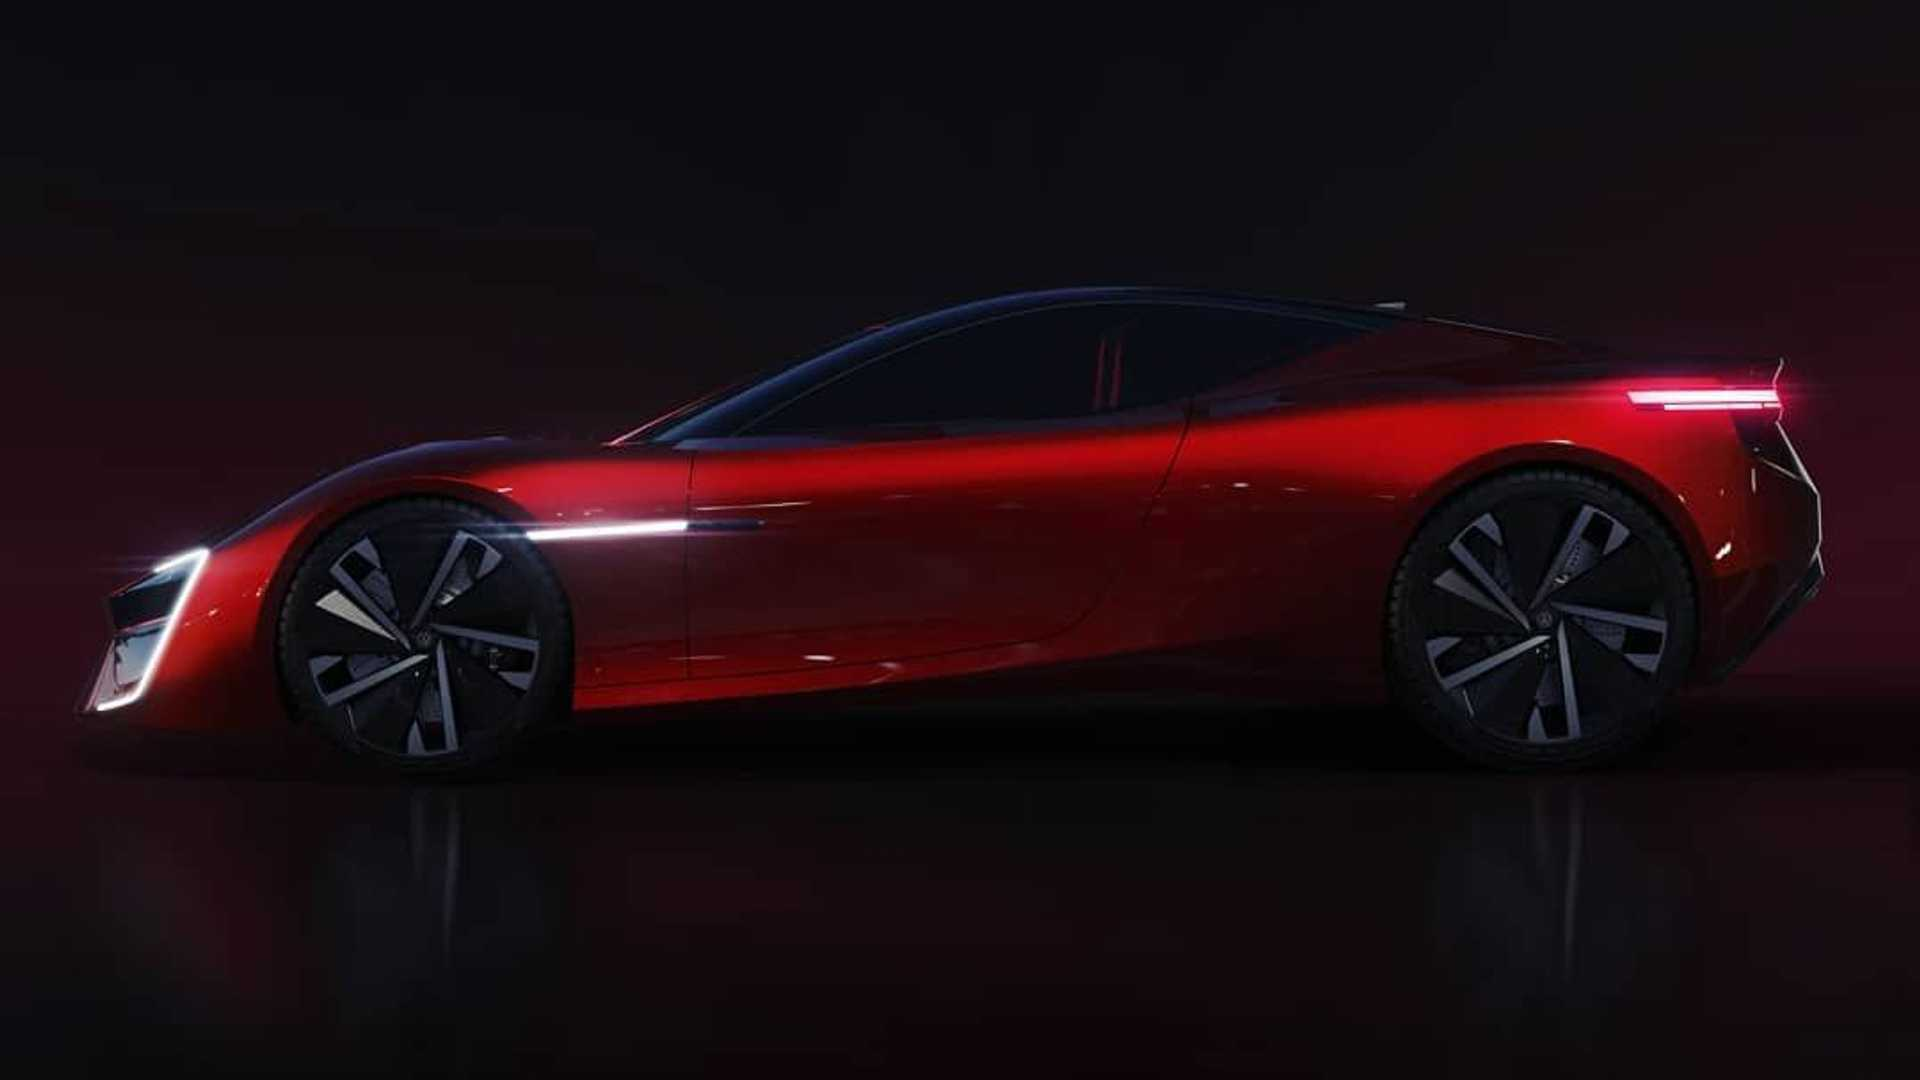 VW_ID_Electric_Supercar_Rendering-0005